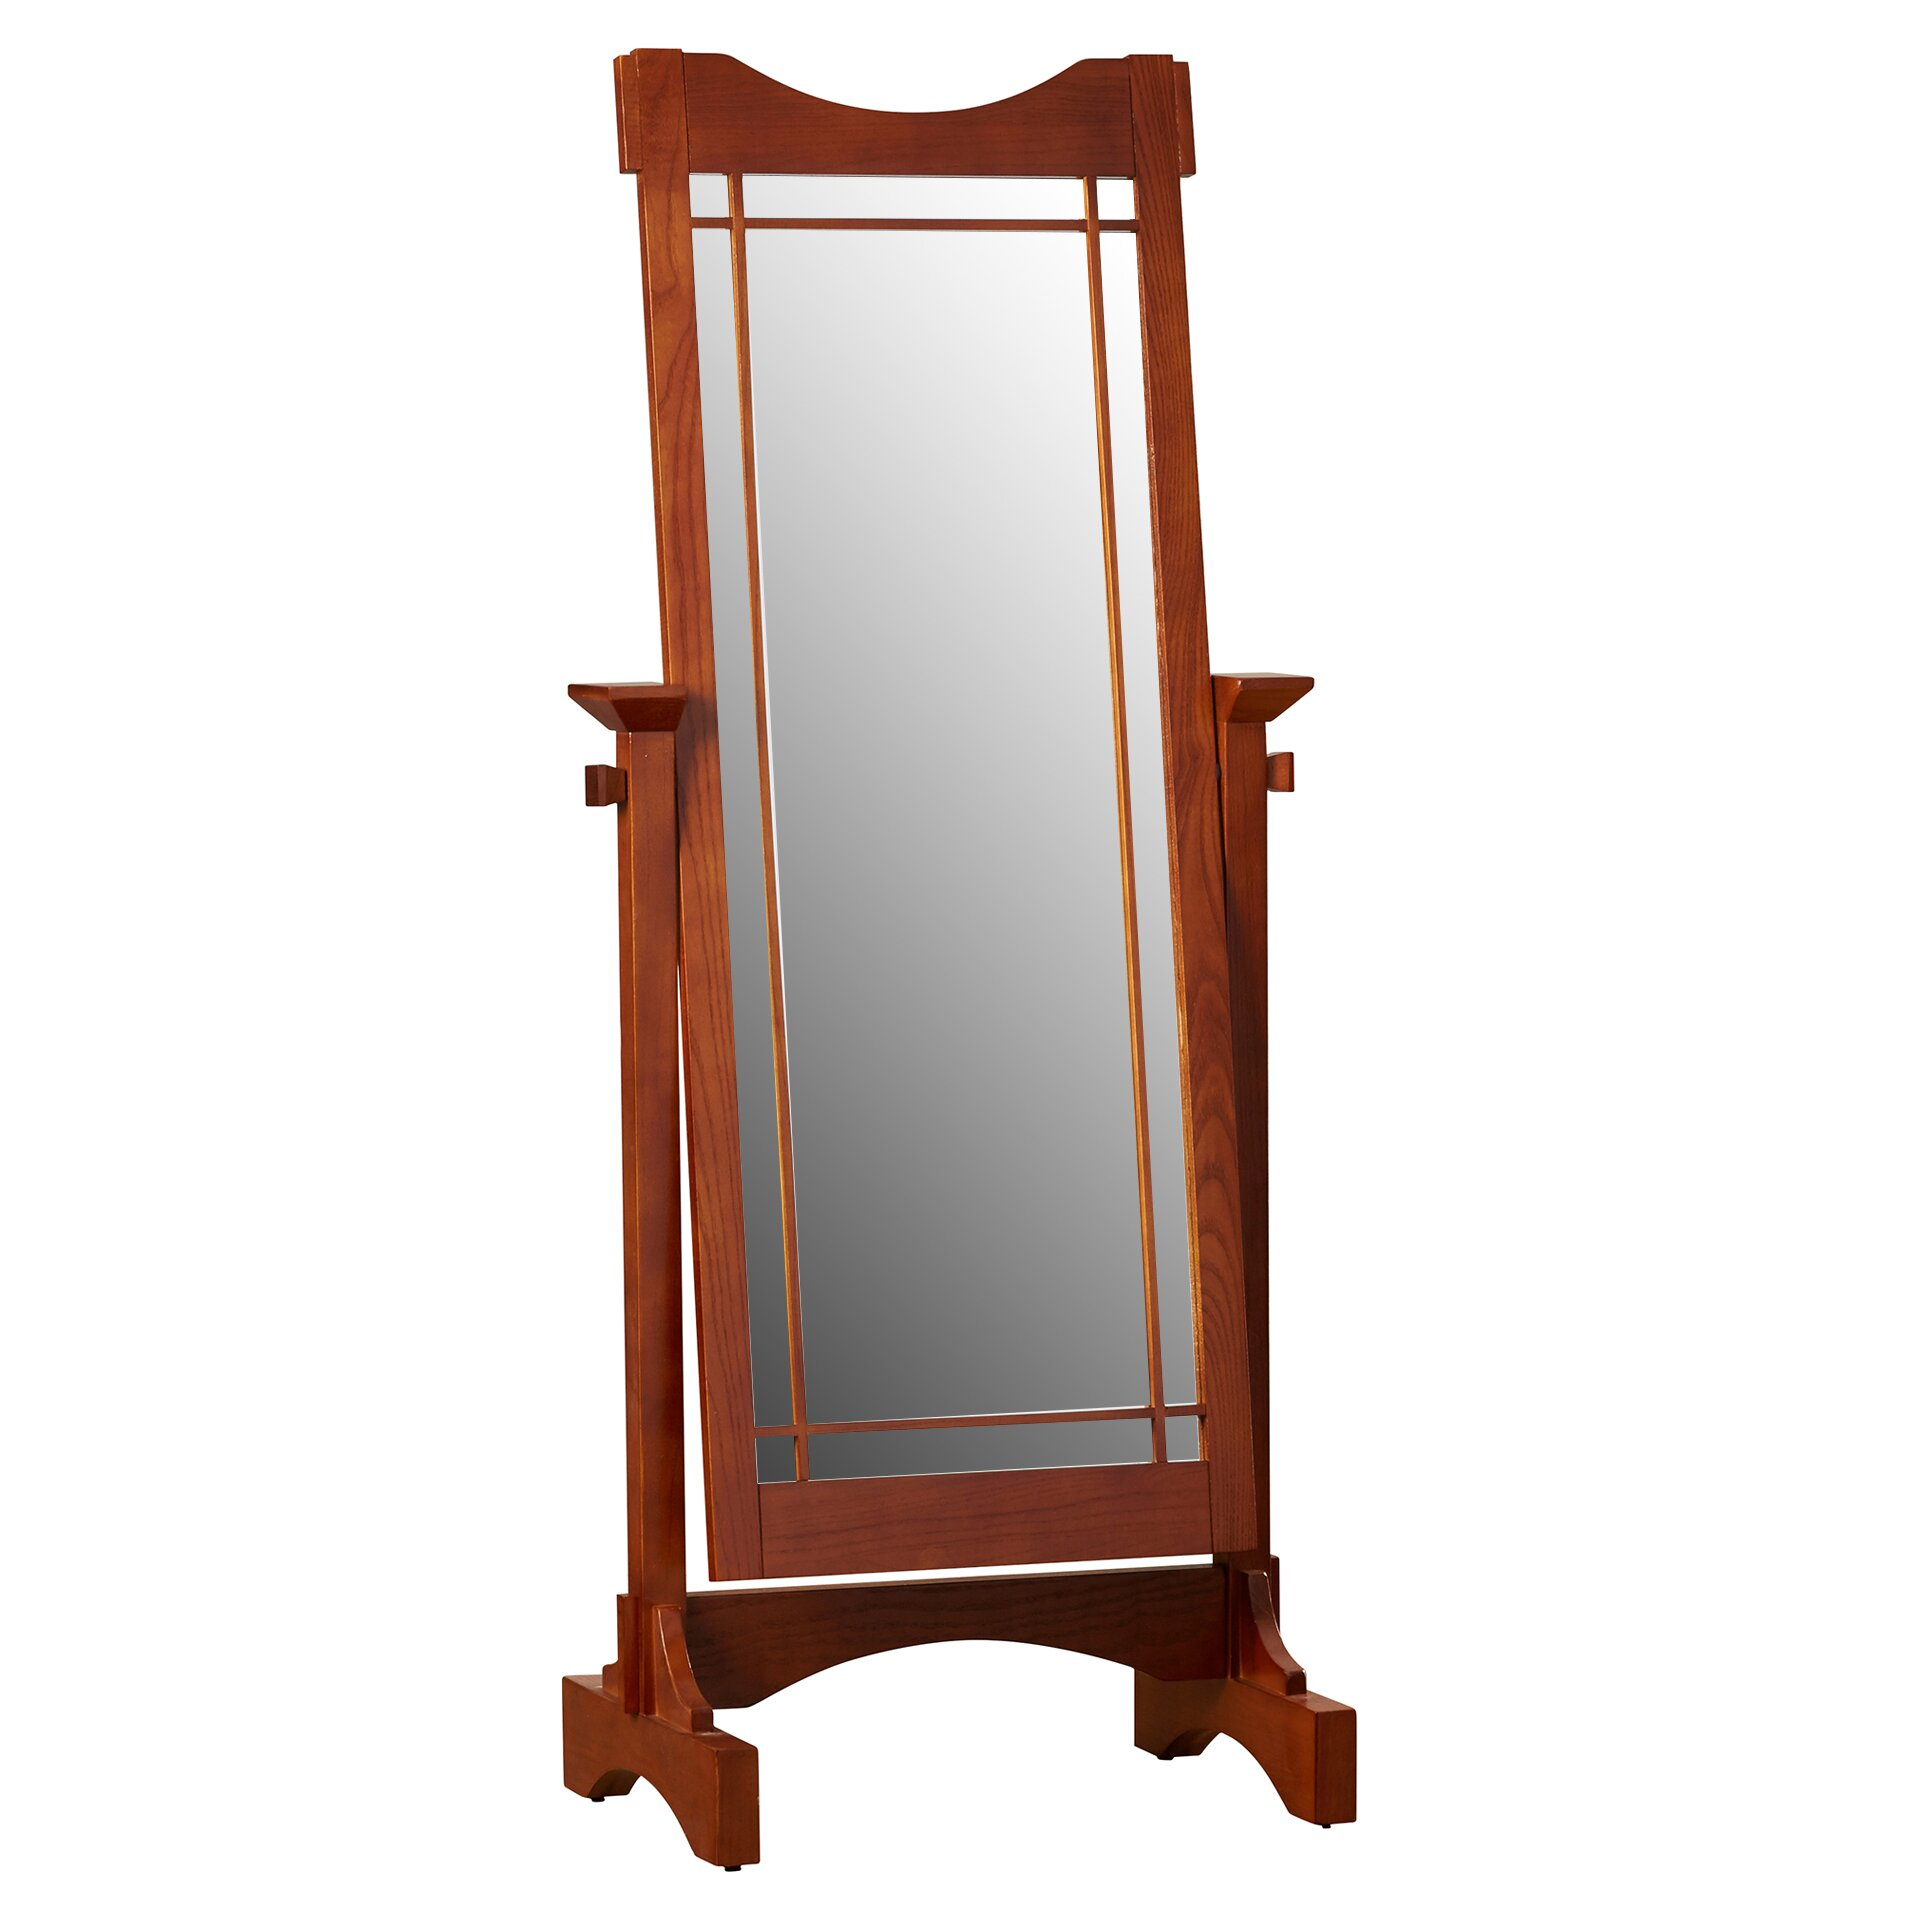 Darby home co cranbrook cheval mirror reviews wayfair for Cheval mirror